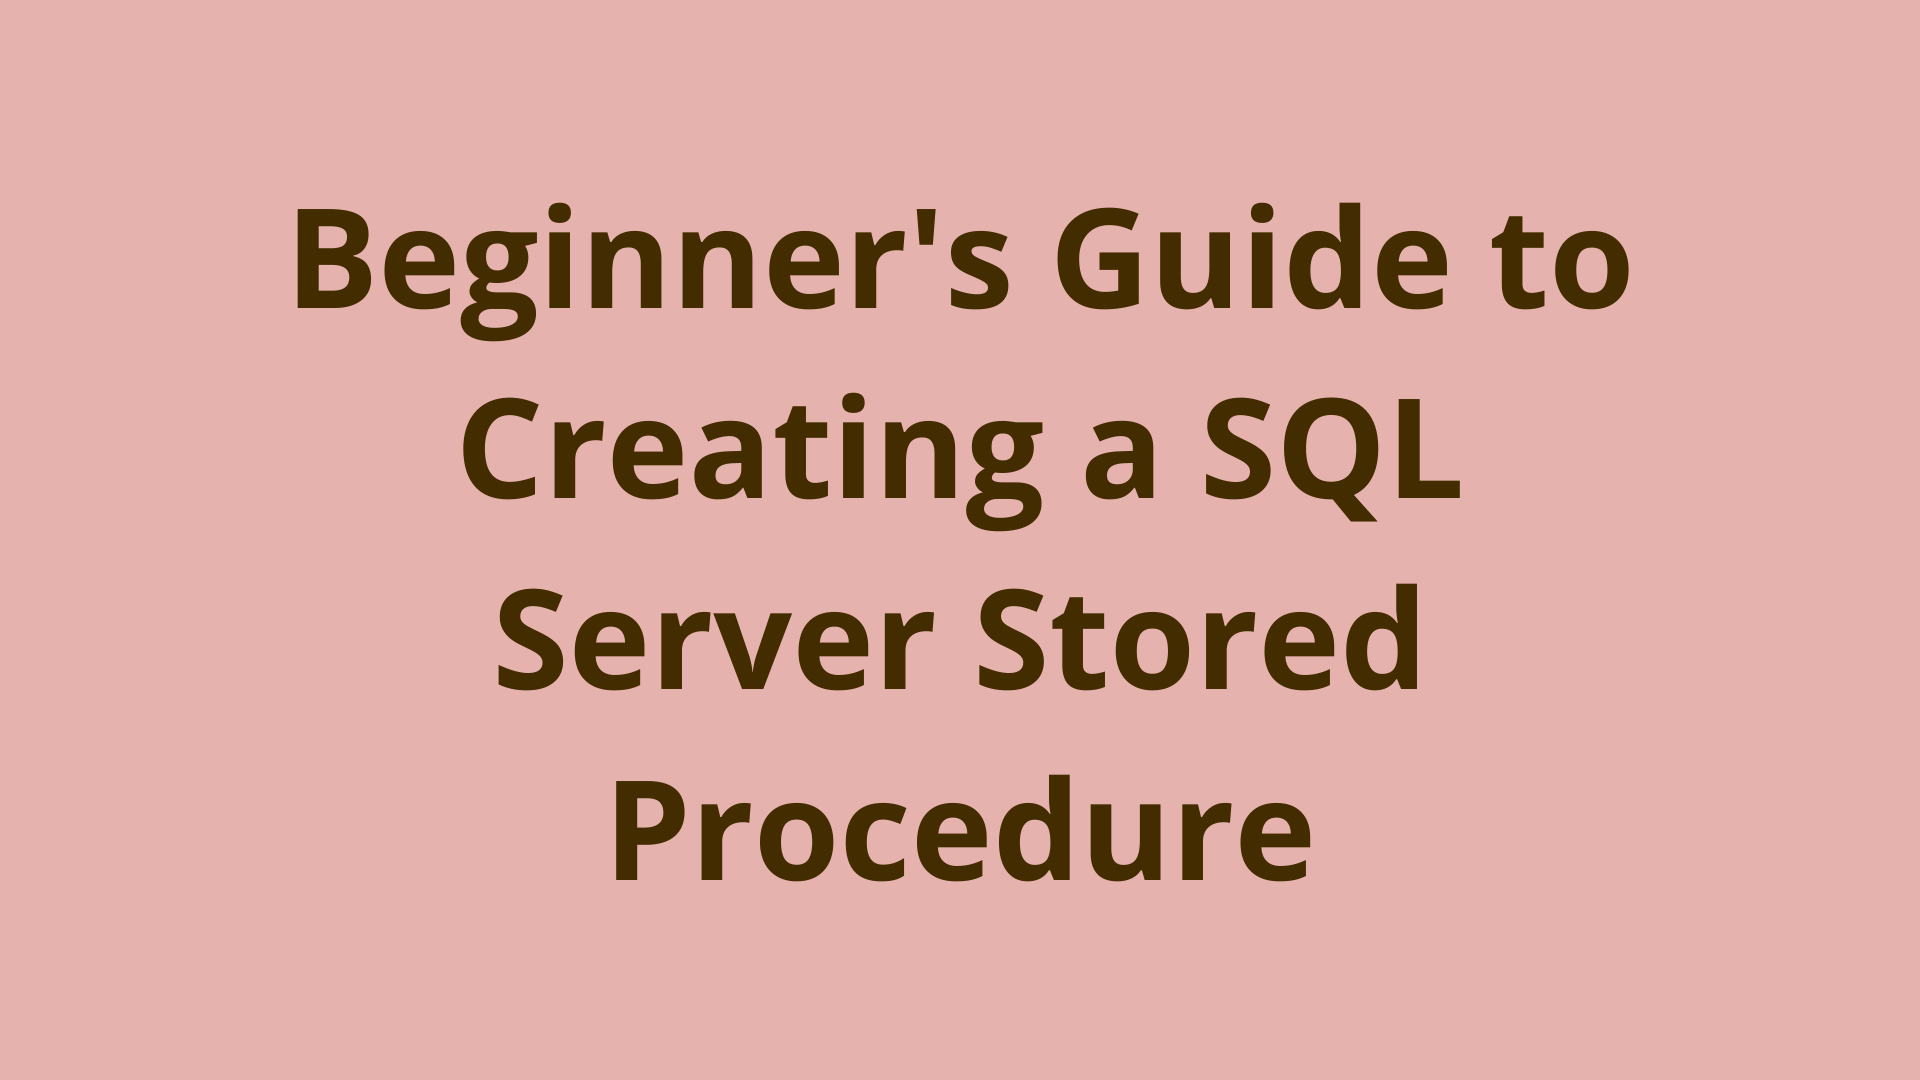 Image of Beginner's guide to creating a SQL Server stored procedure